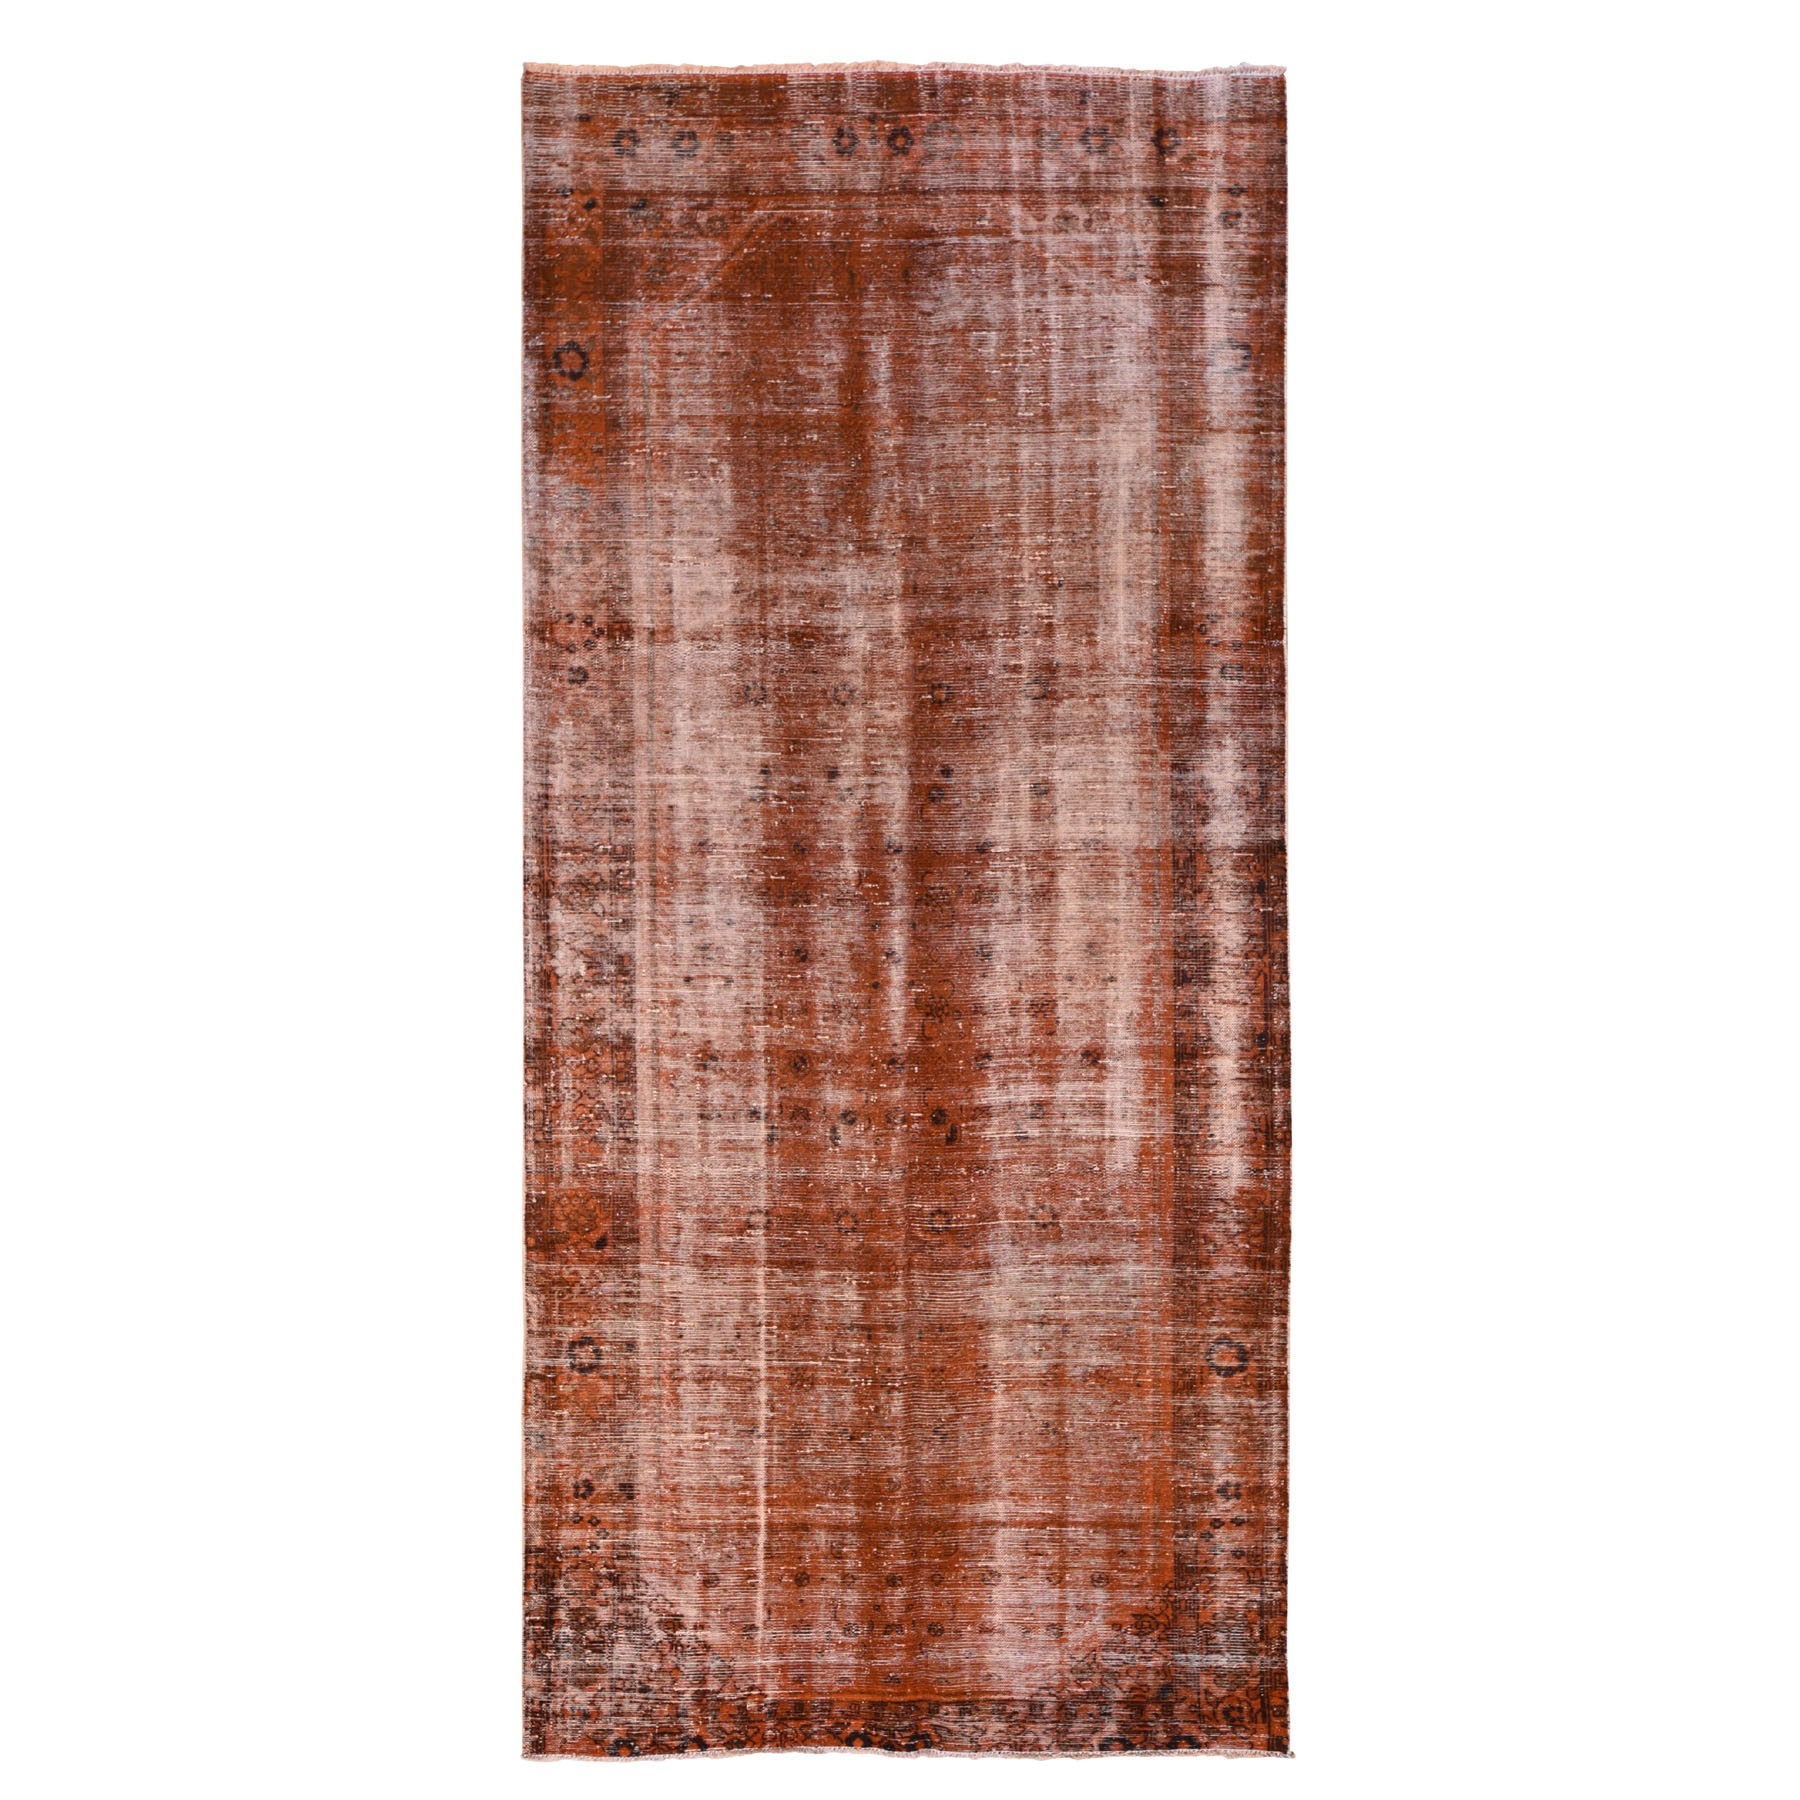 Fetneh Collection And Vintage Overdyed Collection Hand Knotted Orange Rug No: 1118428